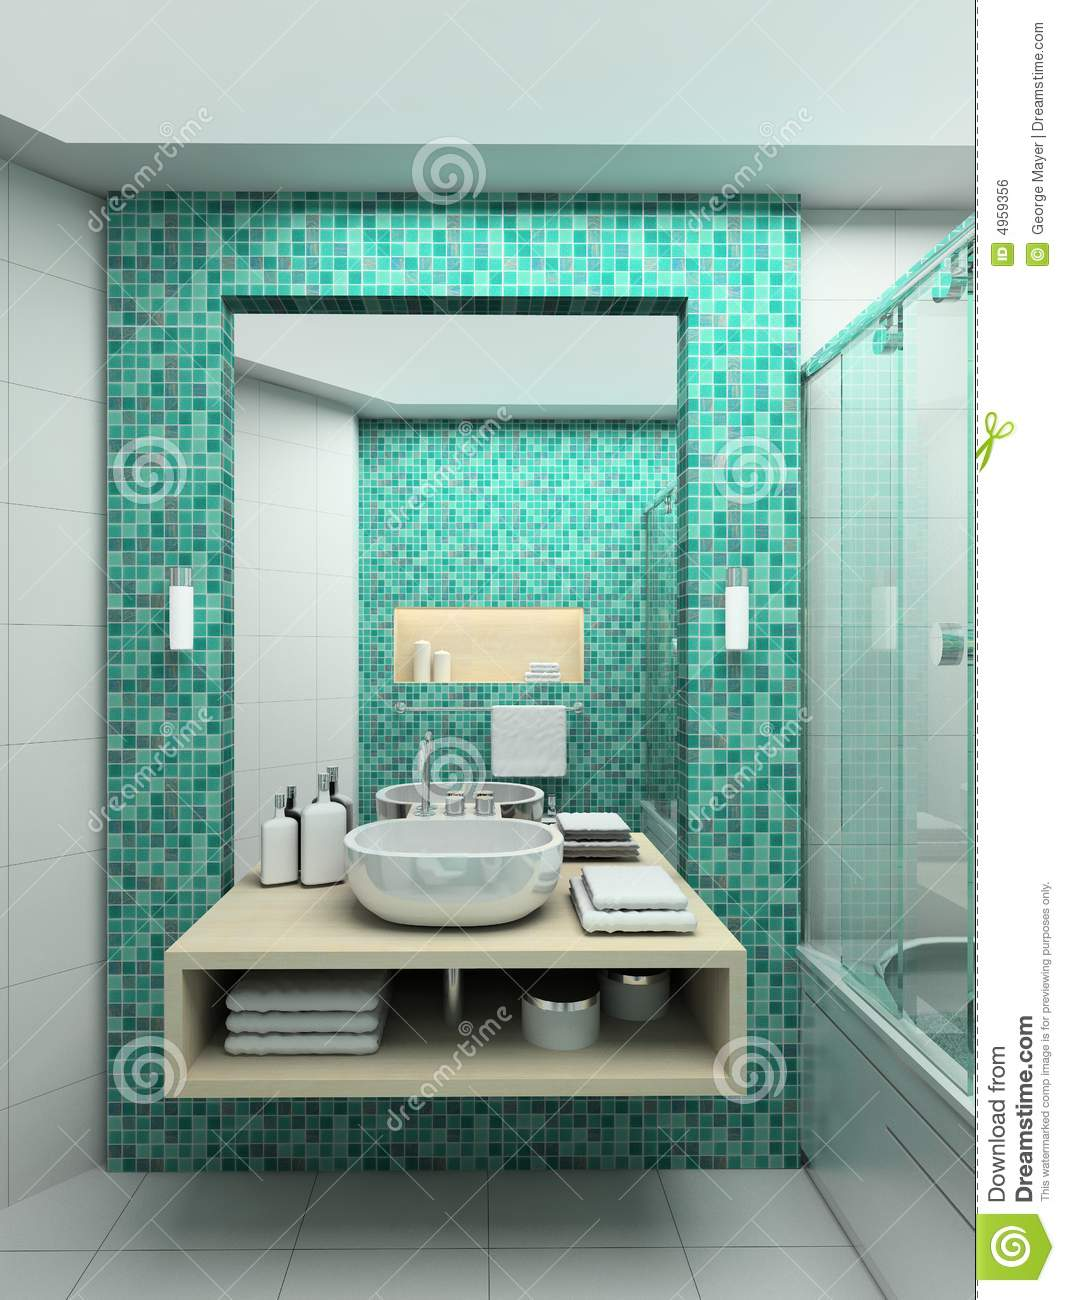 Bathroom Design Interior Modern Render